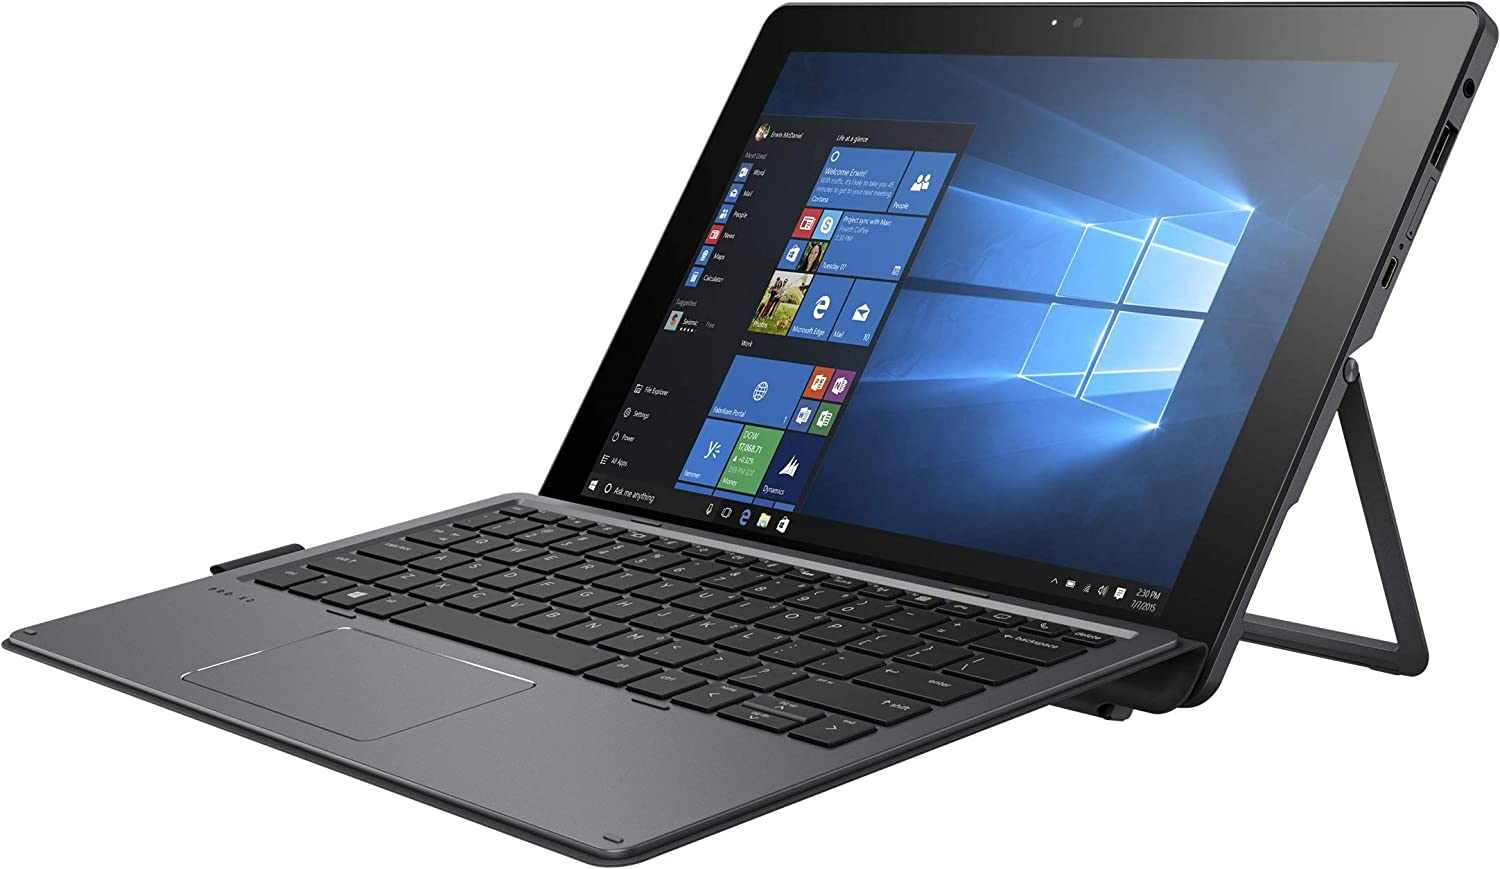 "HP 1BT06UT#ABA Pro X2 612 G2 - 12"" Windows Tablet with Detachable Keyboard Aspect Ratio 3:2 - 256 GB - Gray"